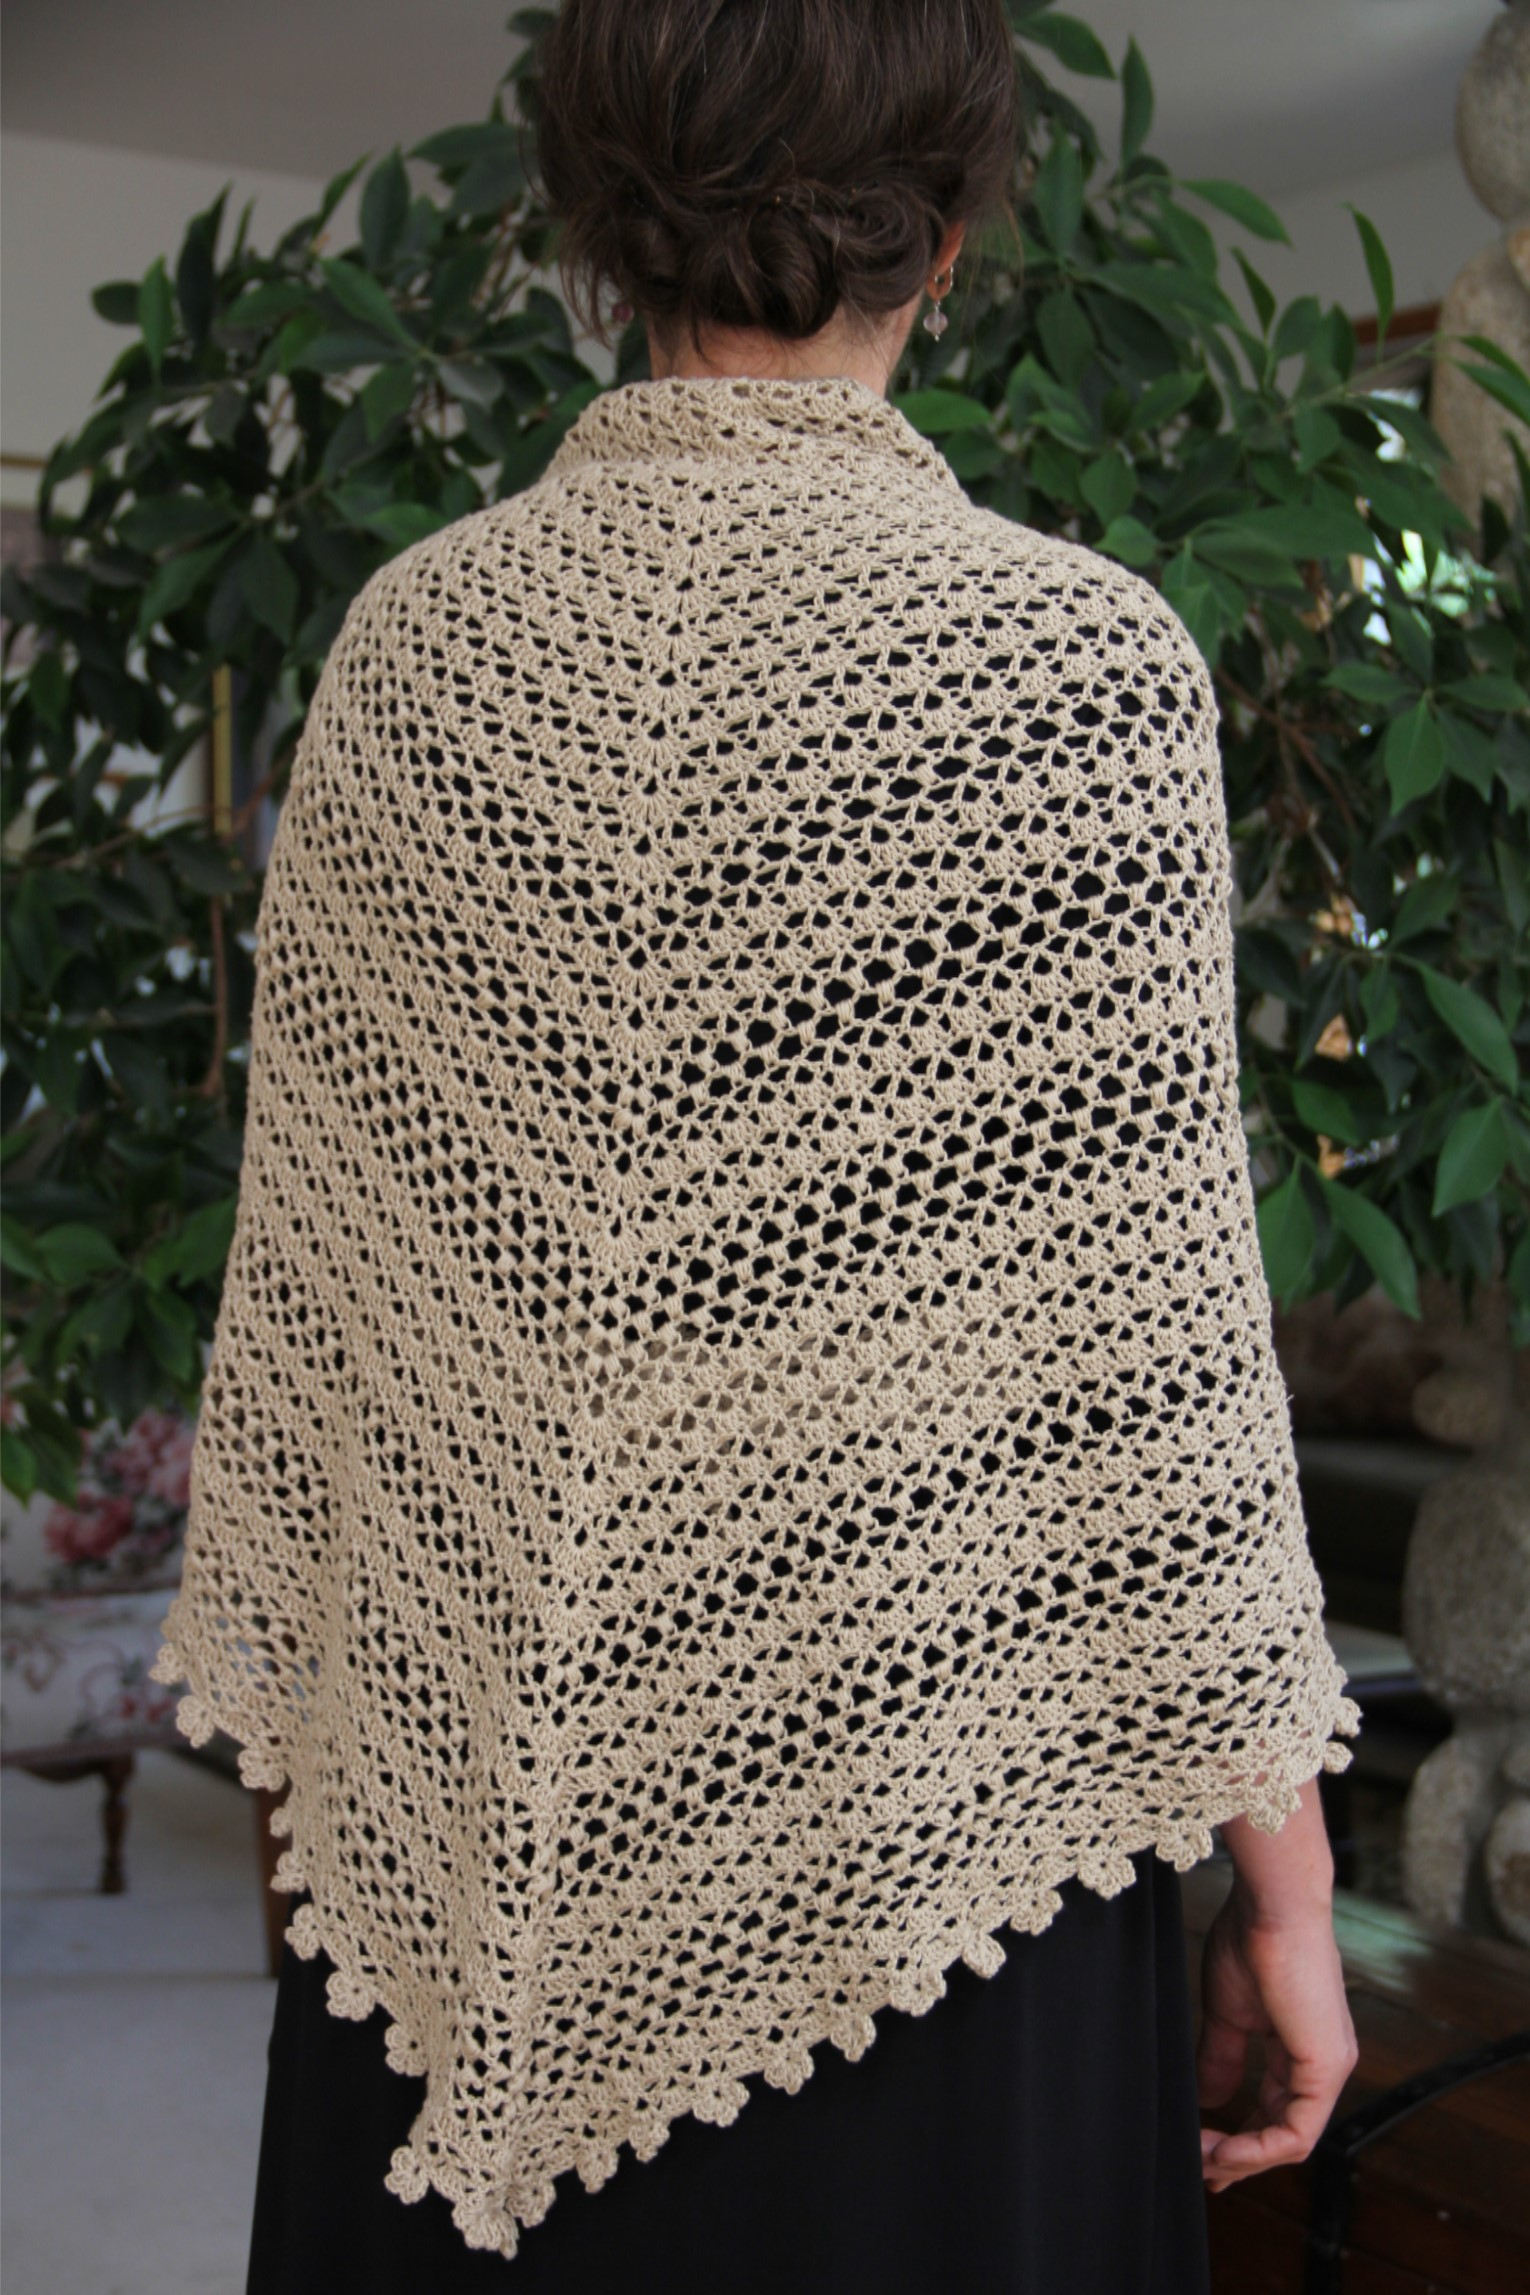 Crochet Shawl Pattern : Free Crochet Shawl Pattern